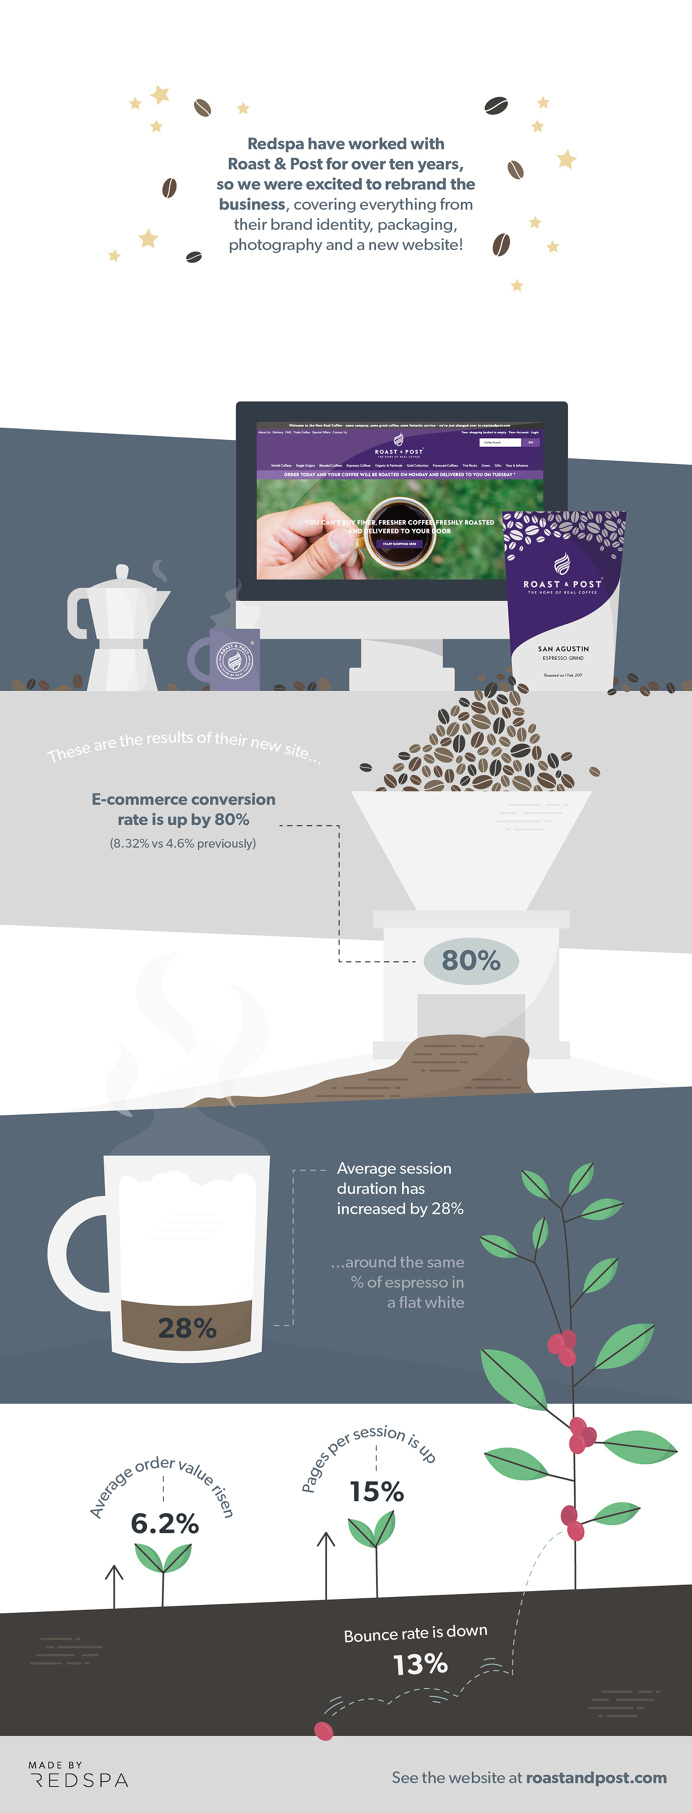 Roast & Post Infographic. Made by Redspa http://redspa.uk